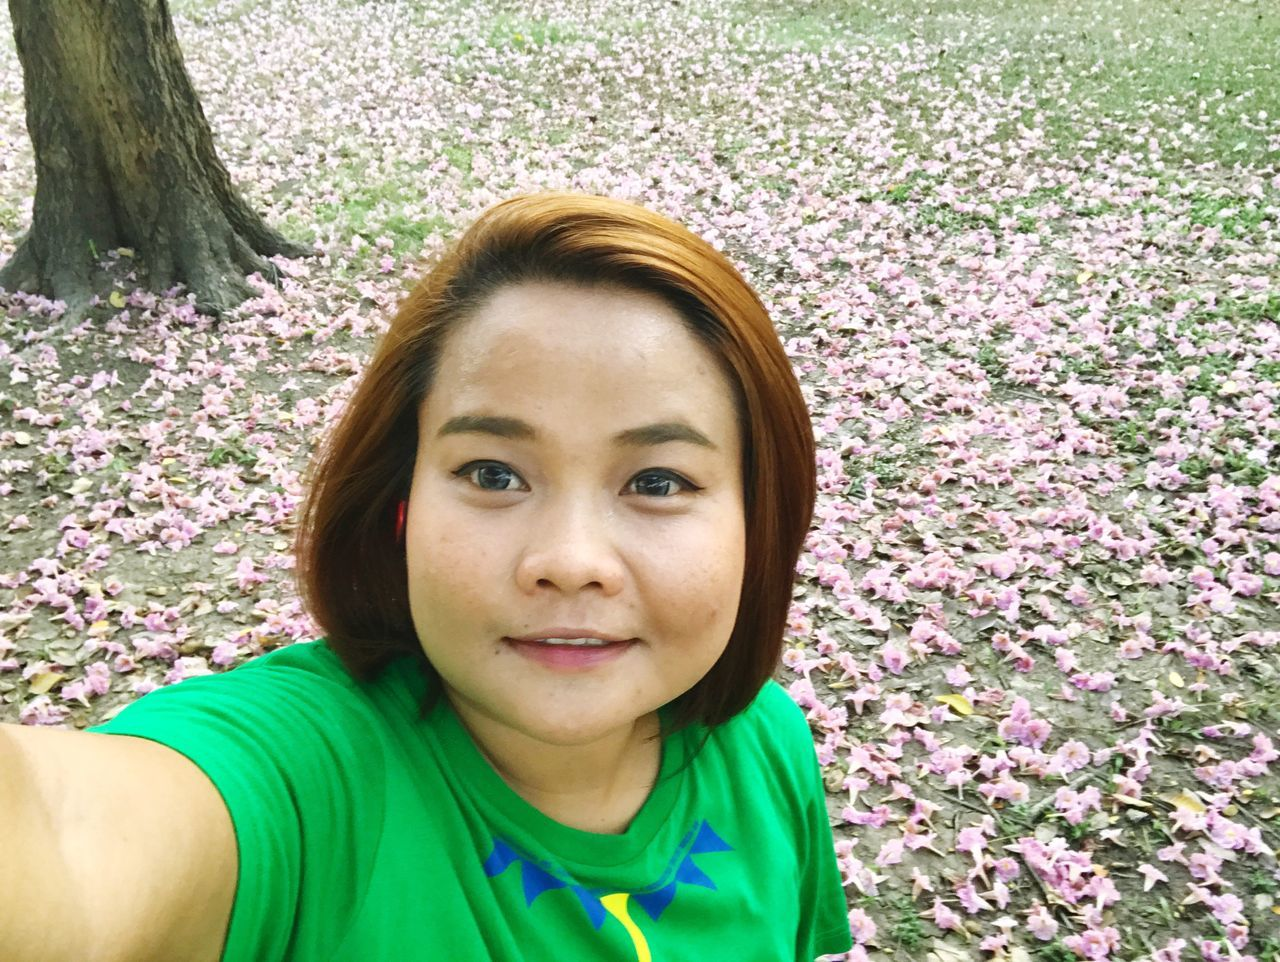 looking at camera, portrait, real people, front view, day, one person, flower, outdoors, park - man made space, casual clothing, smiling, leisure activity, headshot, tree, lifestyles, nature, happiness, young women, young adult, close-up, people